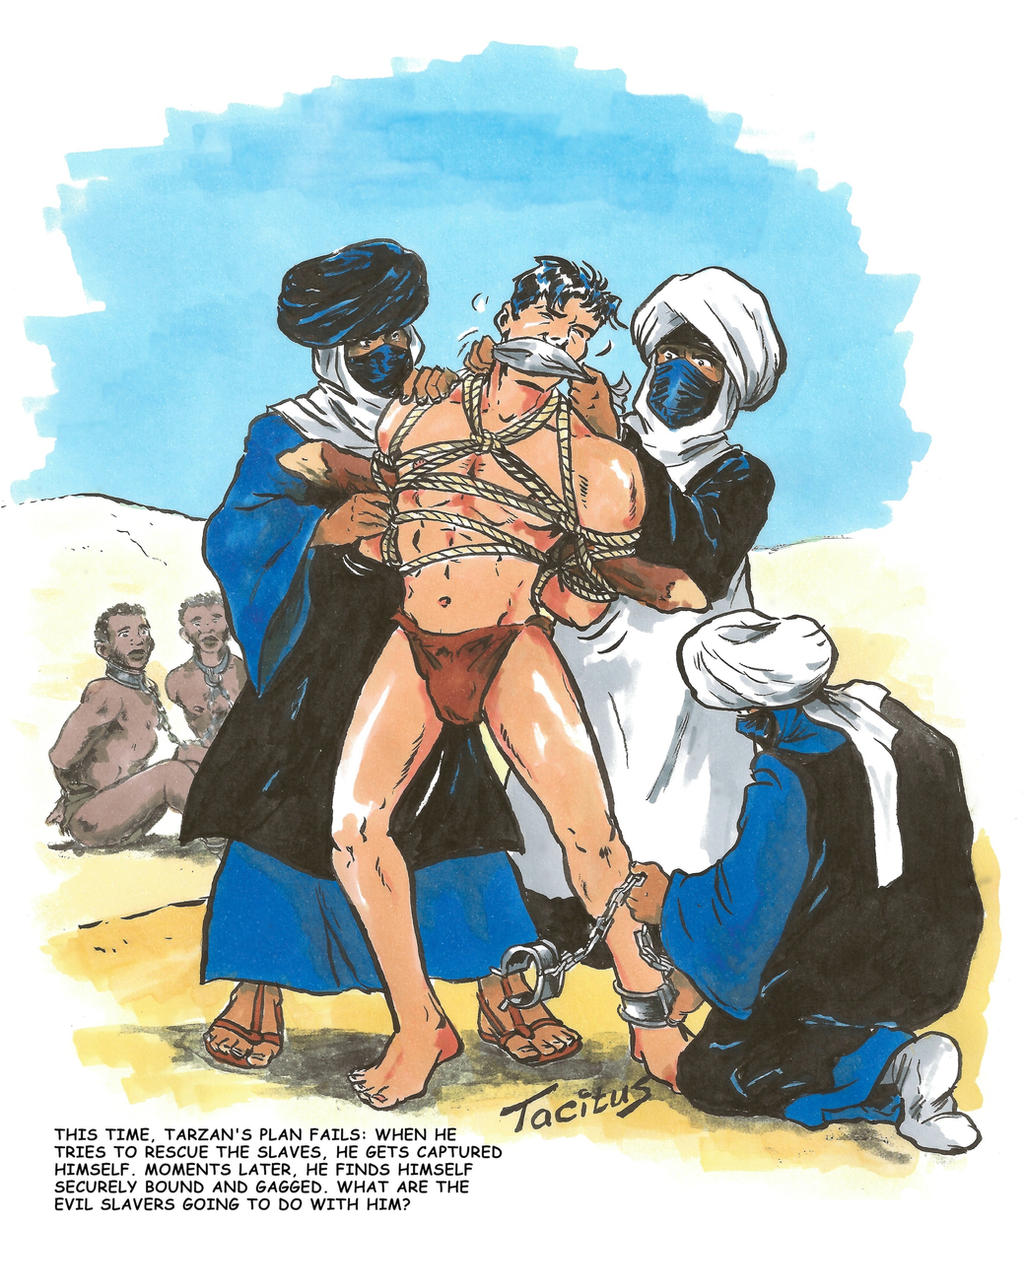 Tarzan captured by Arab slave traders by Tacitus3